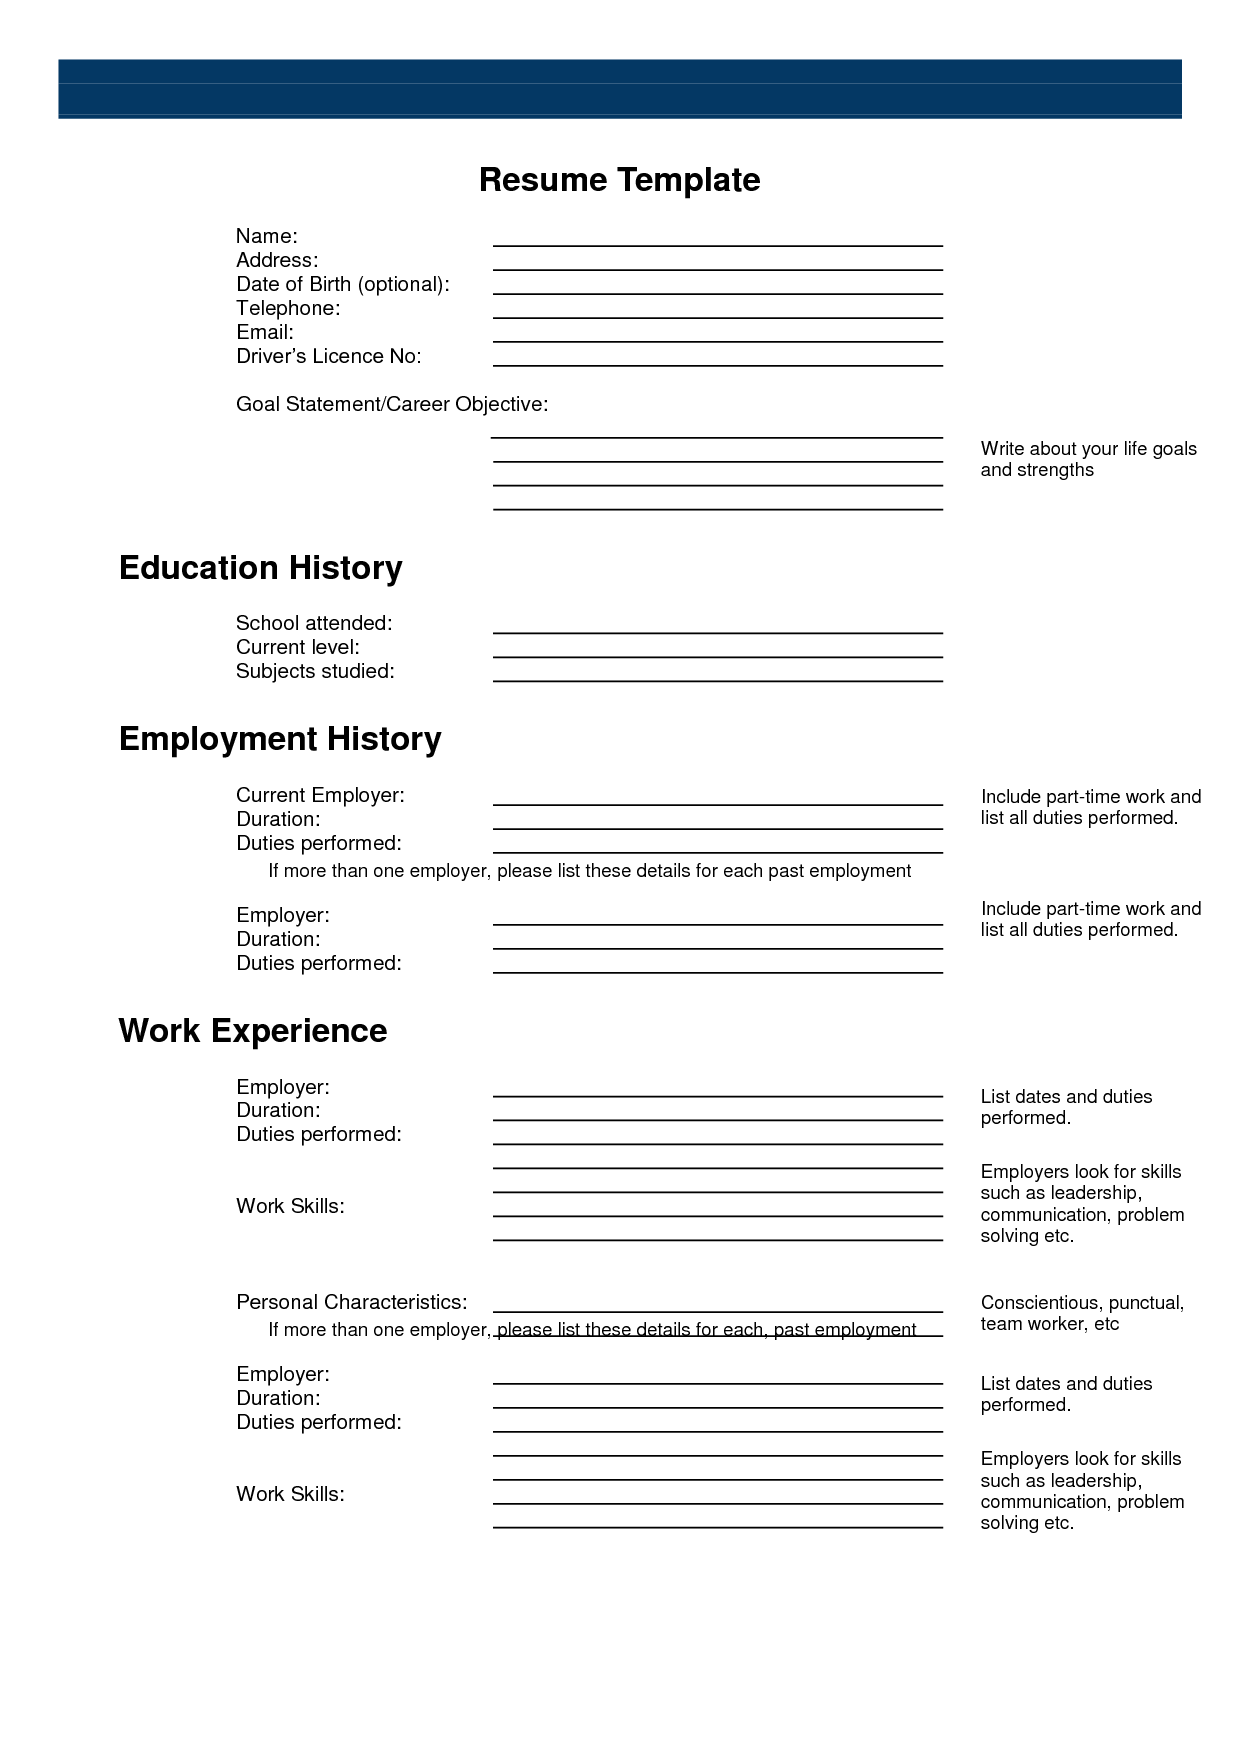 free printable resume templates blank sample template website pictures pin best free home design idea inspiration - Free Resume Builder And Print